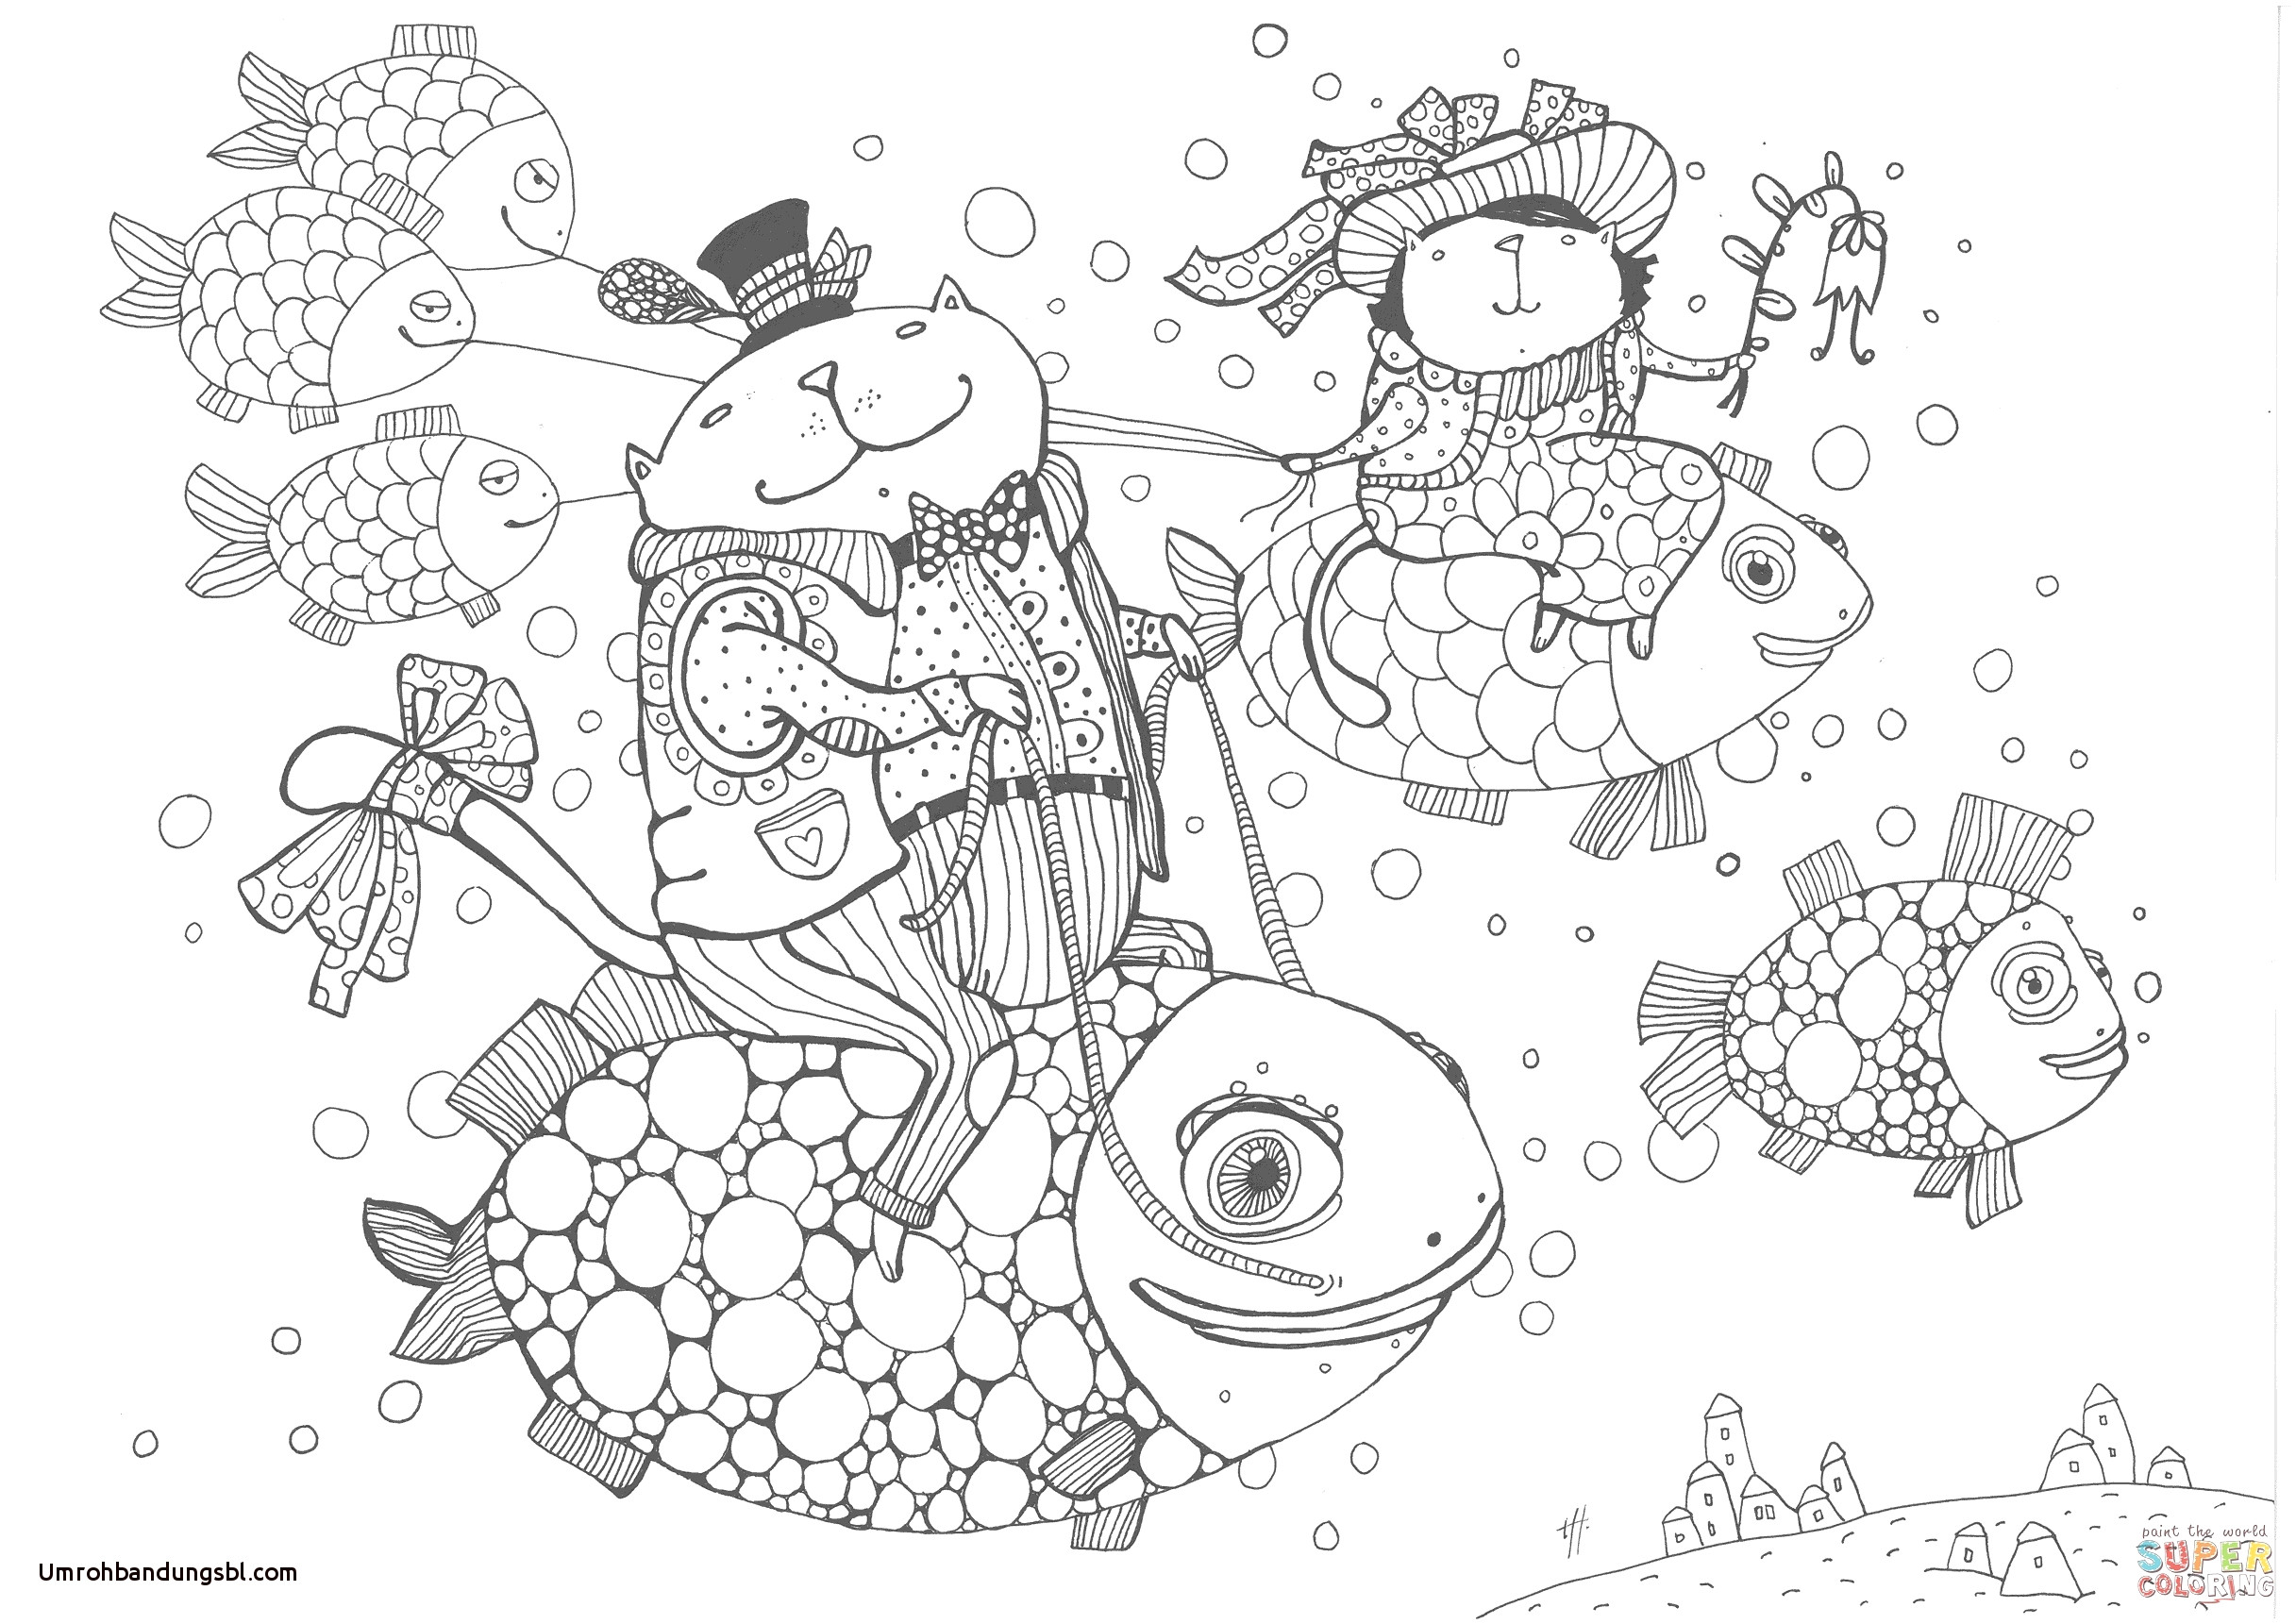 free coloring pages to color online Download-what to do with finished coloring pages new cool od dog coloring of things to do 8-n